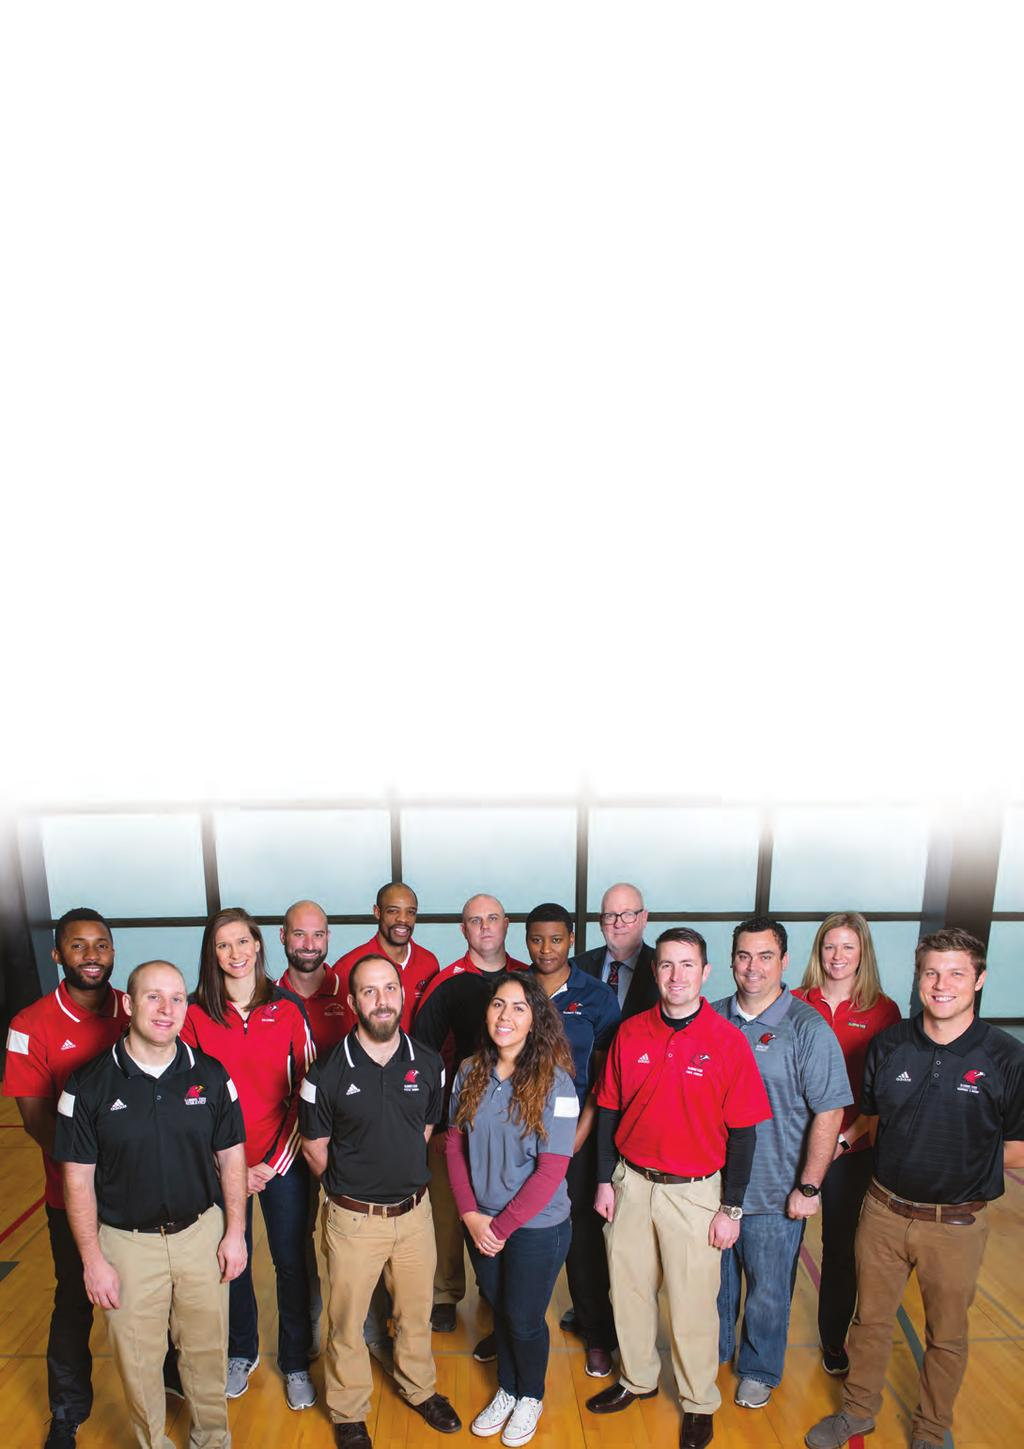 DEDICATED TO YOU: OUR STAFF Illinois Tech s varsity coaches, assistant coaches, trainers, and program administrators are experienced in leading intercollegiate teams.